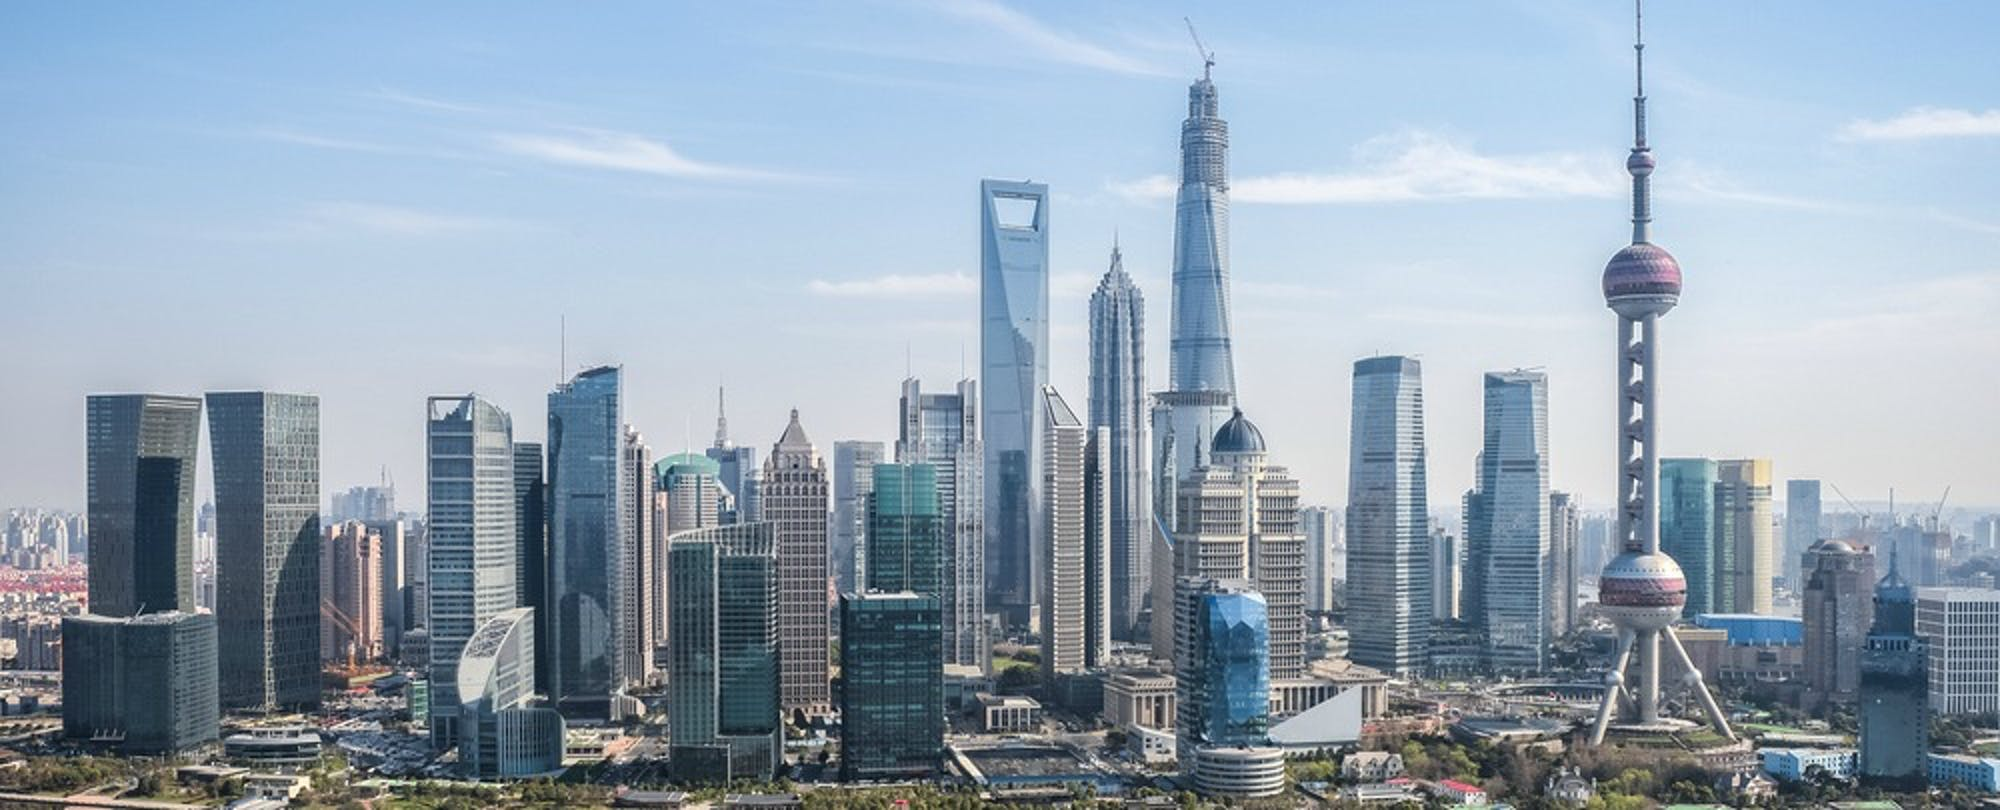 Looking to Grow in China? 3 Lessons for U.S. Edtech Companies